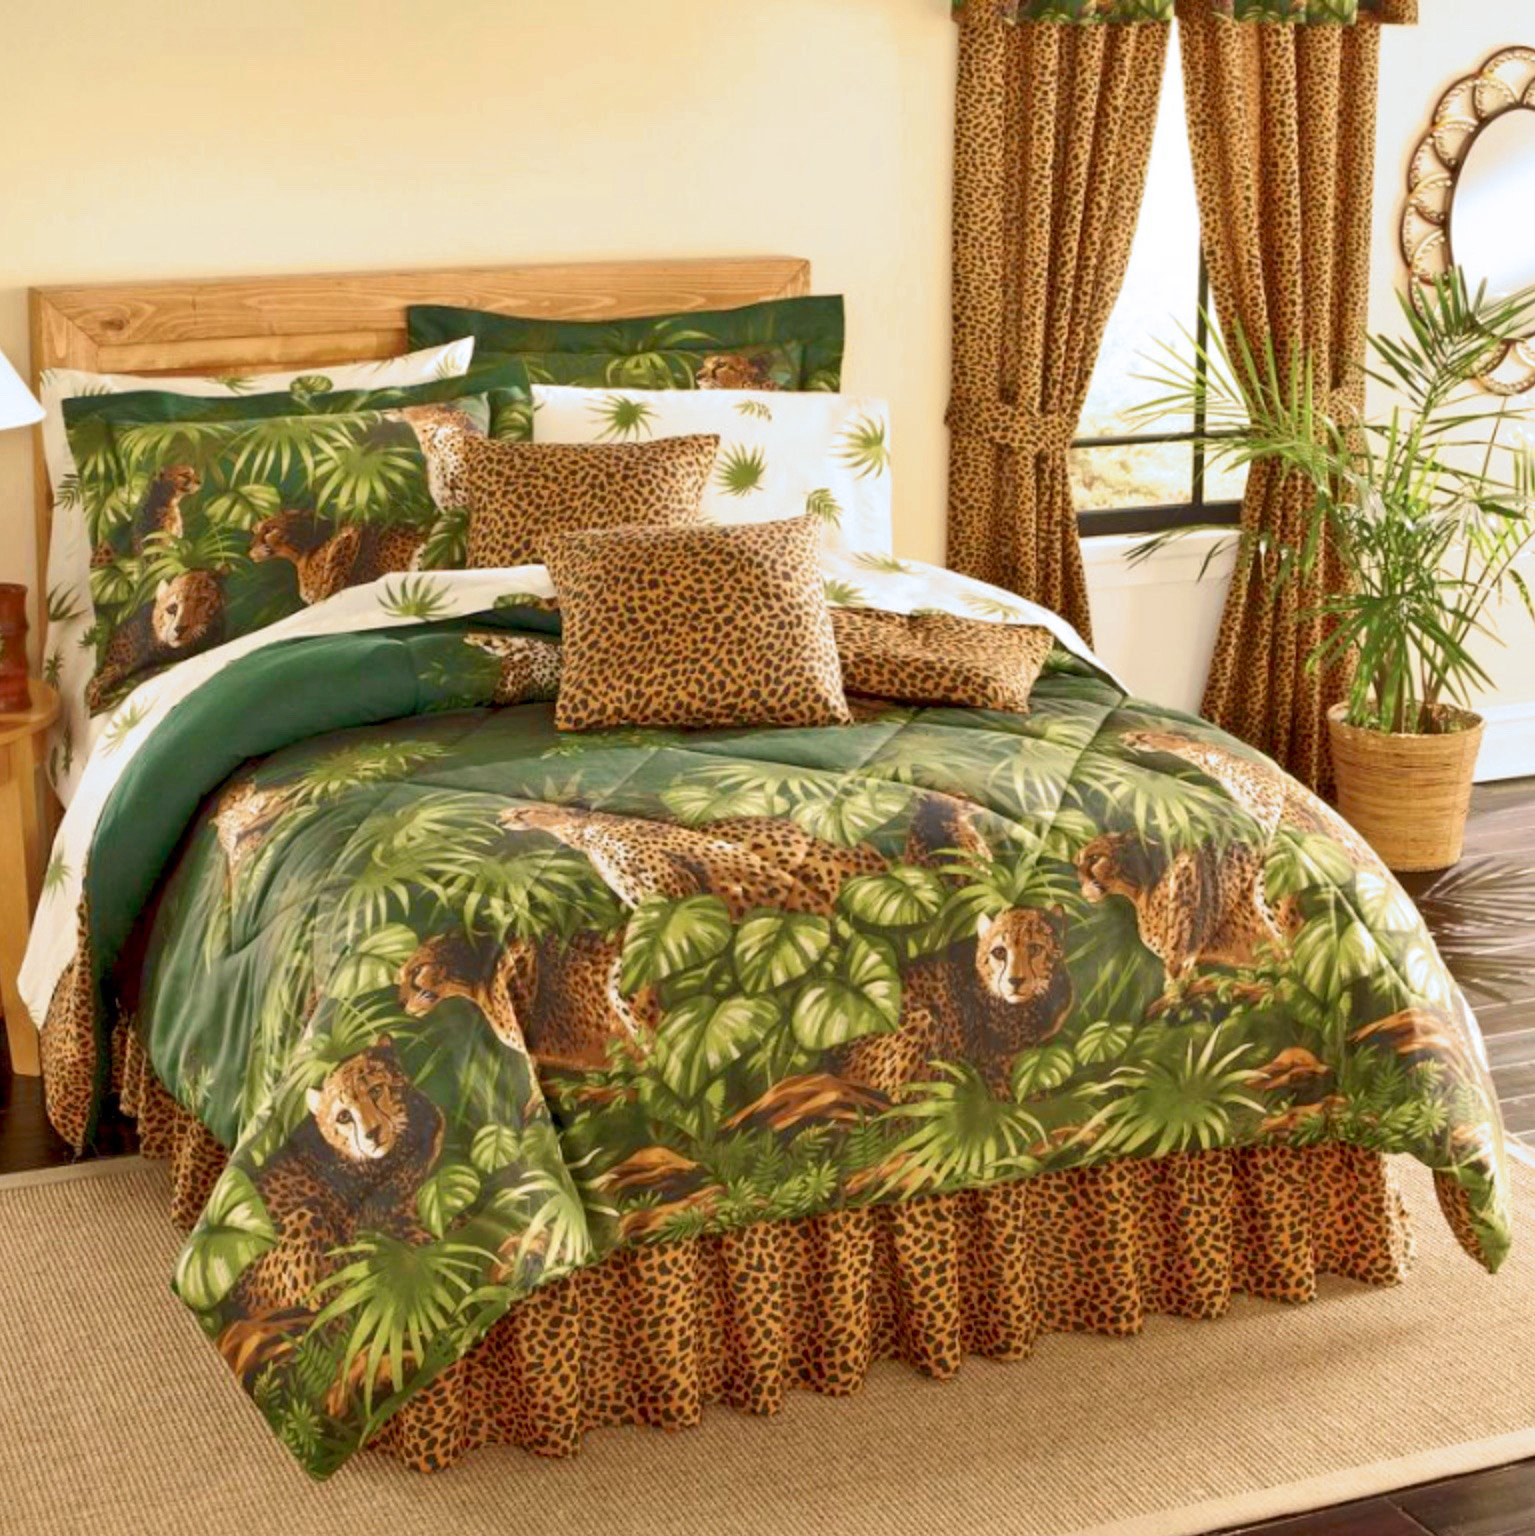 Safari CHEETAH LEOPARD CATS Comforter & Sheet Set With Palm Leaf Foliage (8pc Queen Size(86''x86'') Bed In A Bag Set)